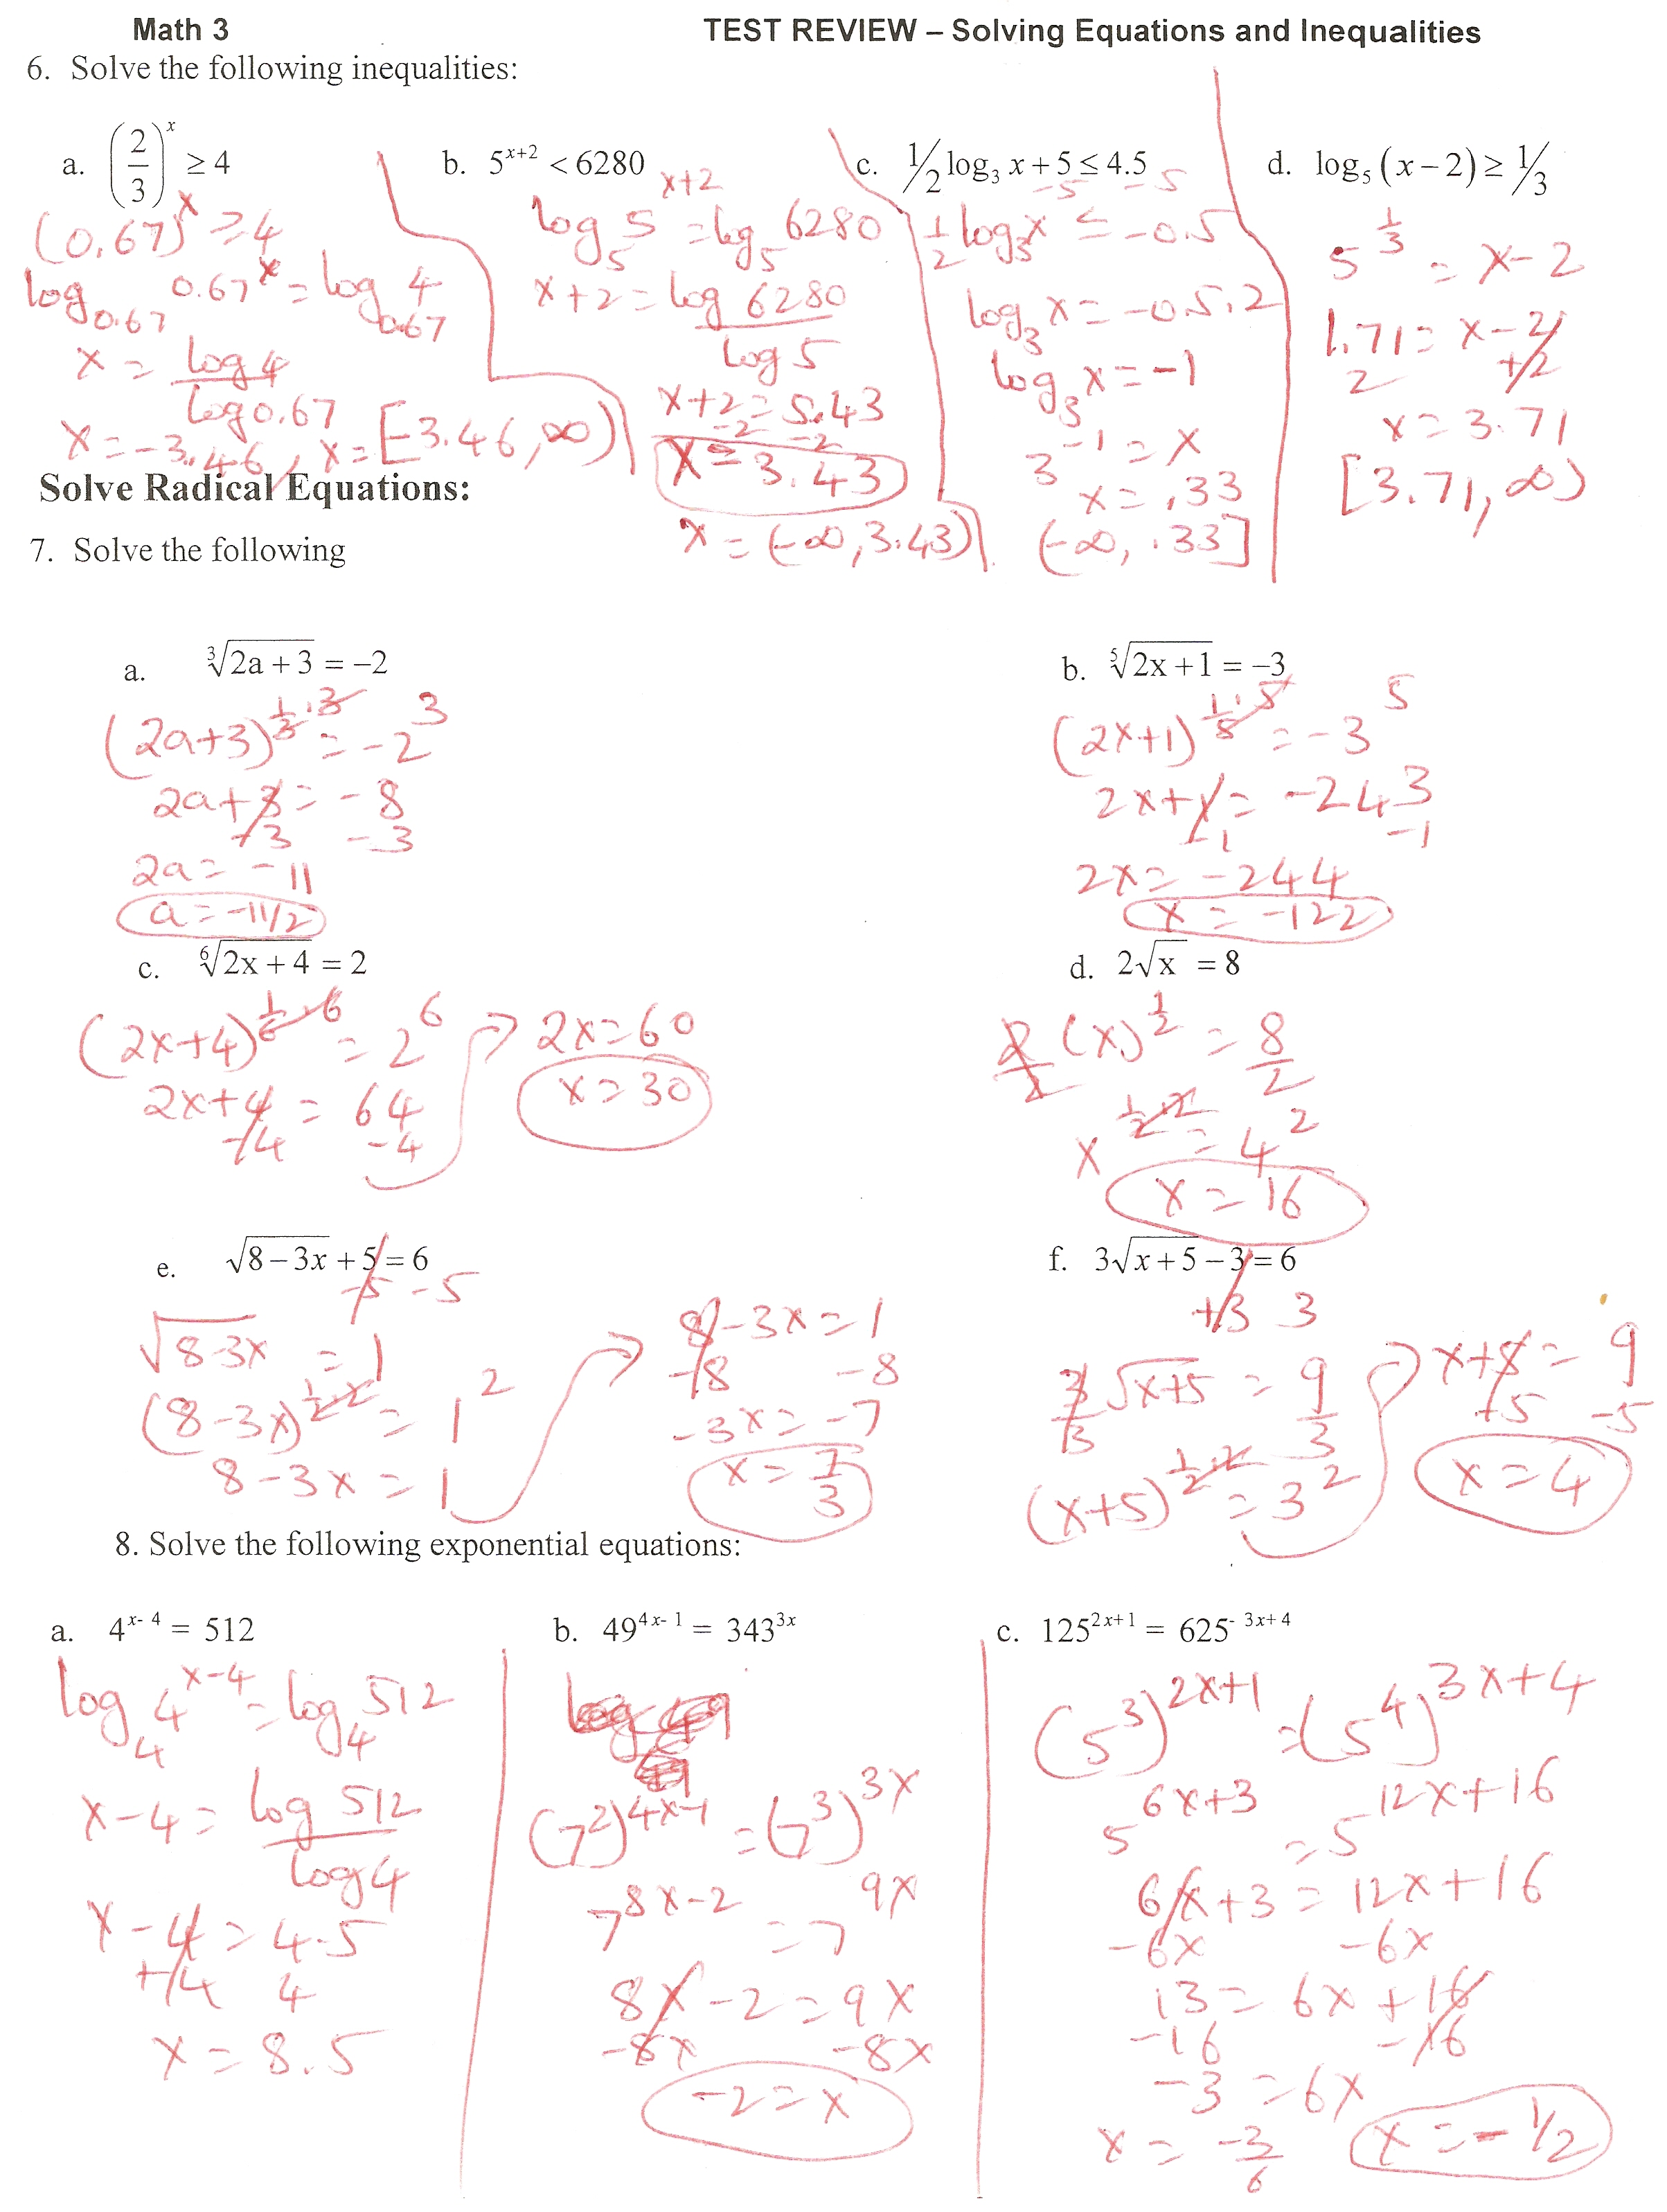 worksheet Solving Log Equations Worksheet worksheet solving exponential and logarithmic equations log test review ms osawaru